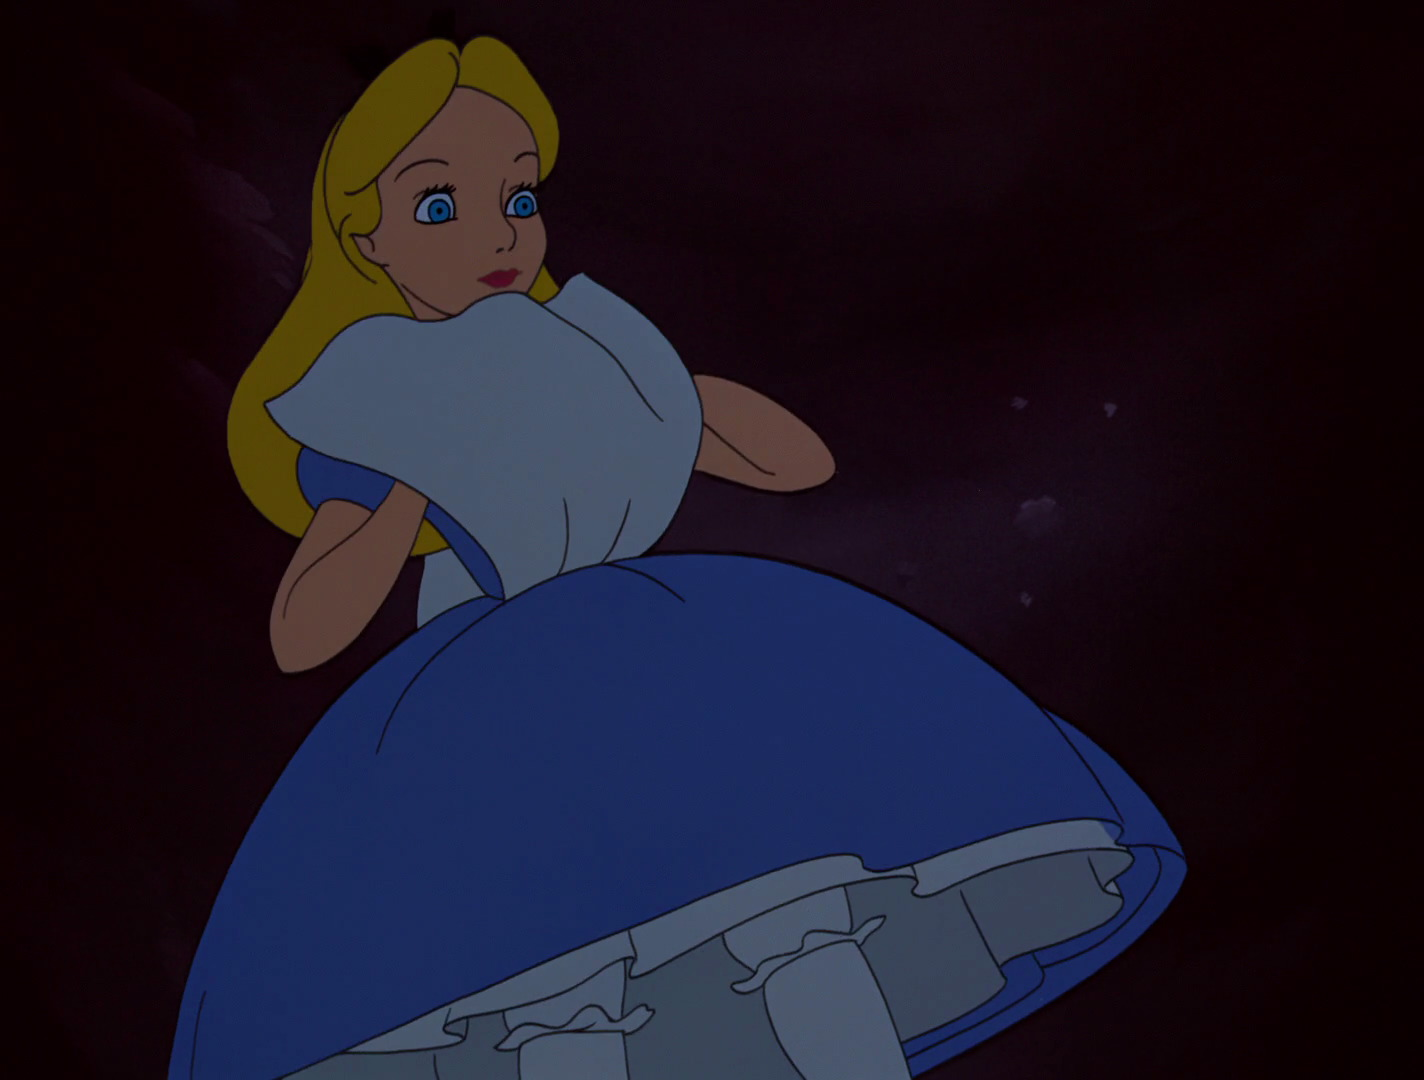 Alice Parachute Dress Deviantart: Alice-in-wonderland-disneyscreencaps.com-543.jpg